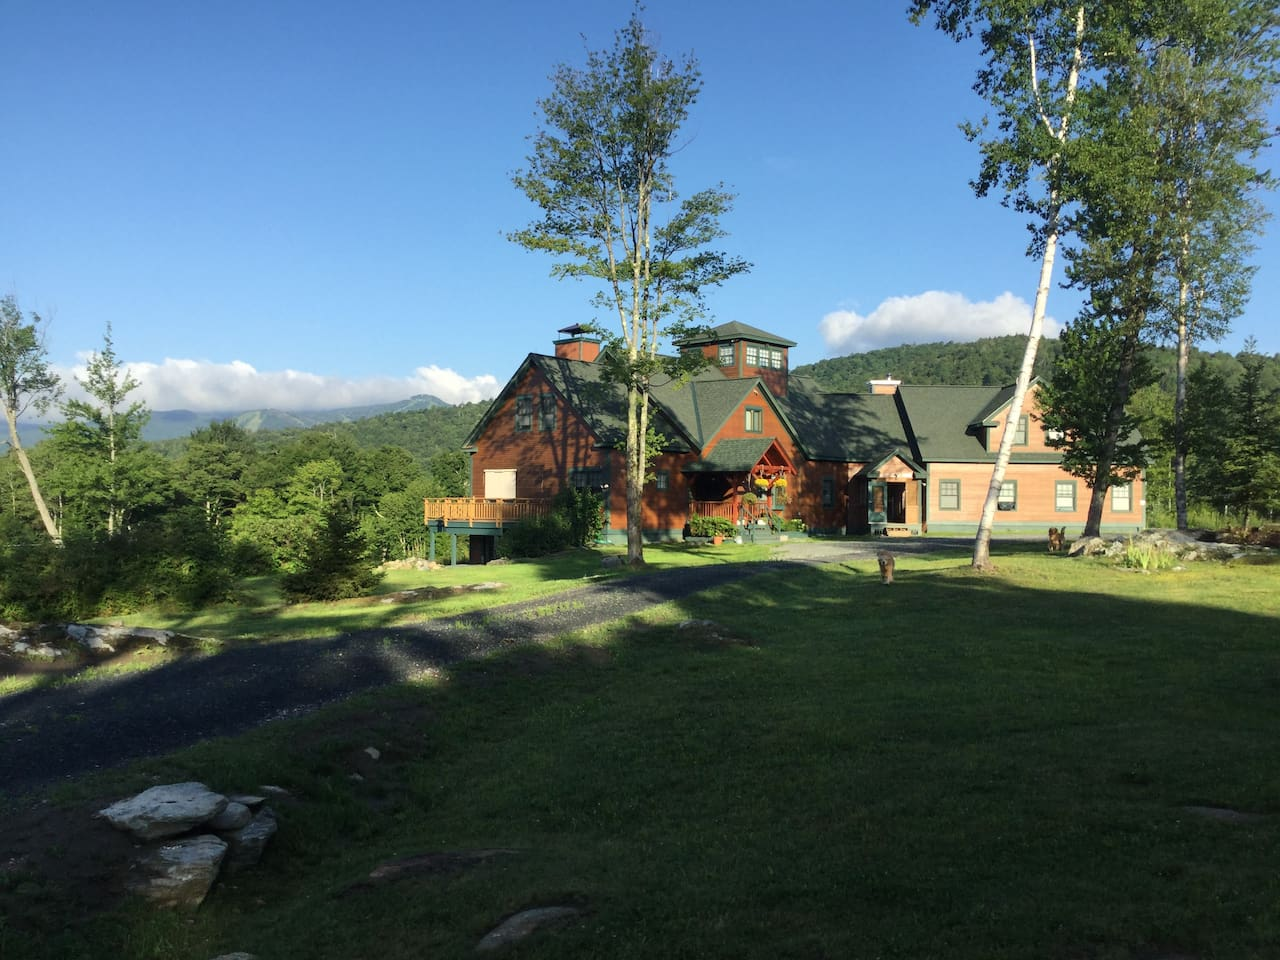 With Killington Peak in the background, Stonewall Manor is secluded, yet less than 5 miles to the Killington Gondola.